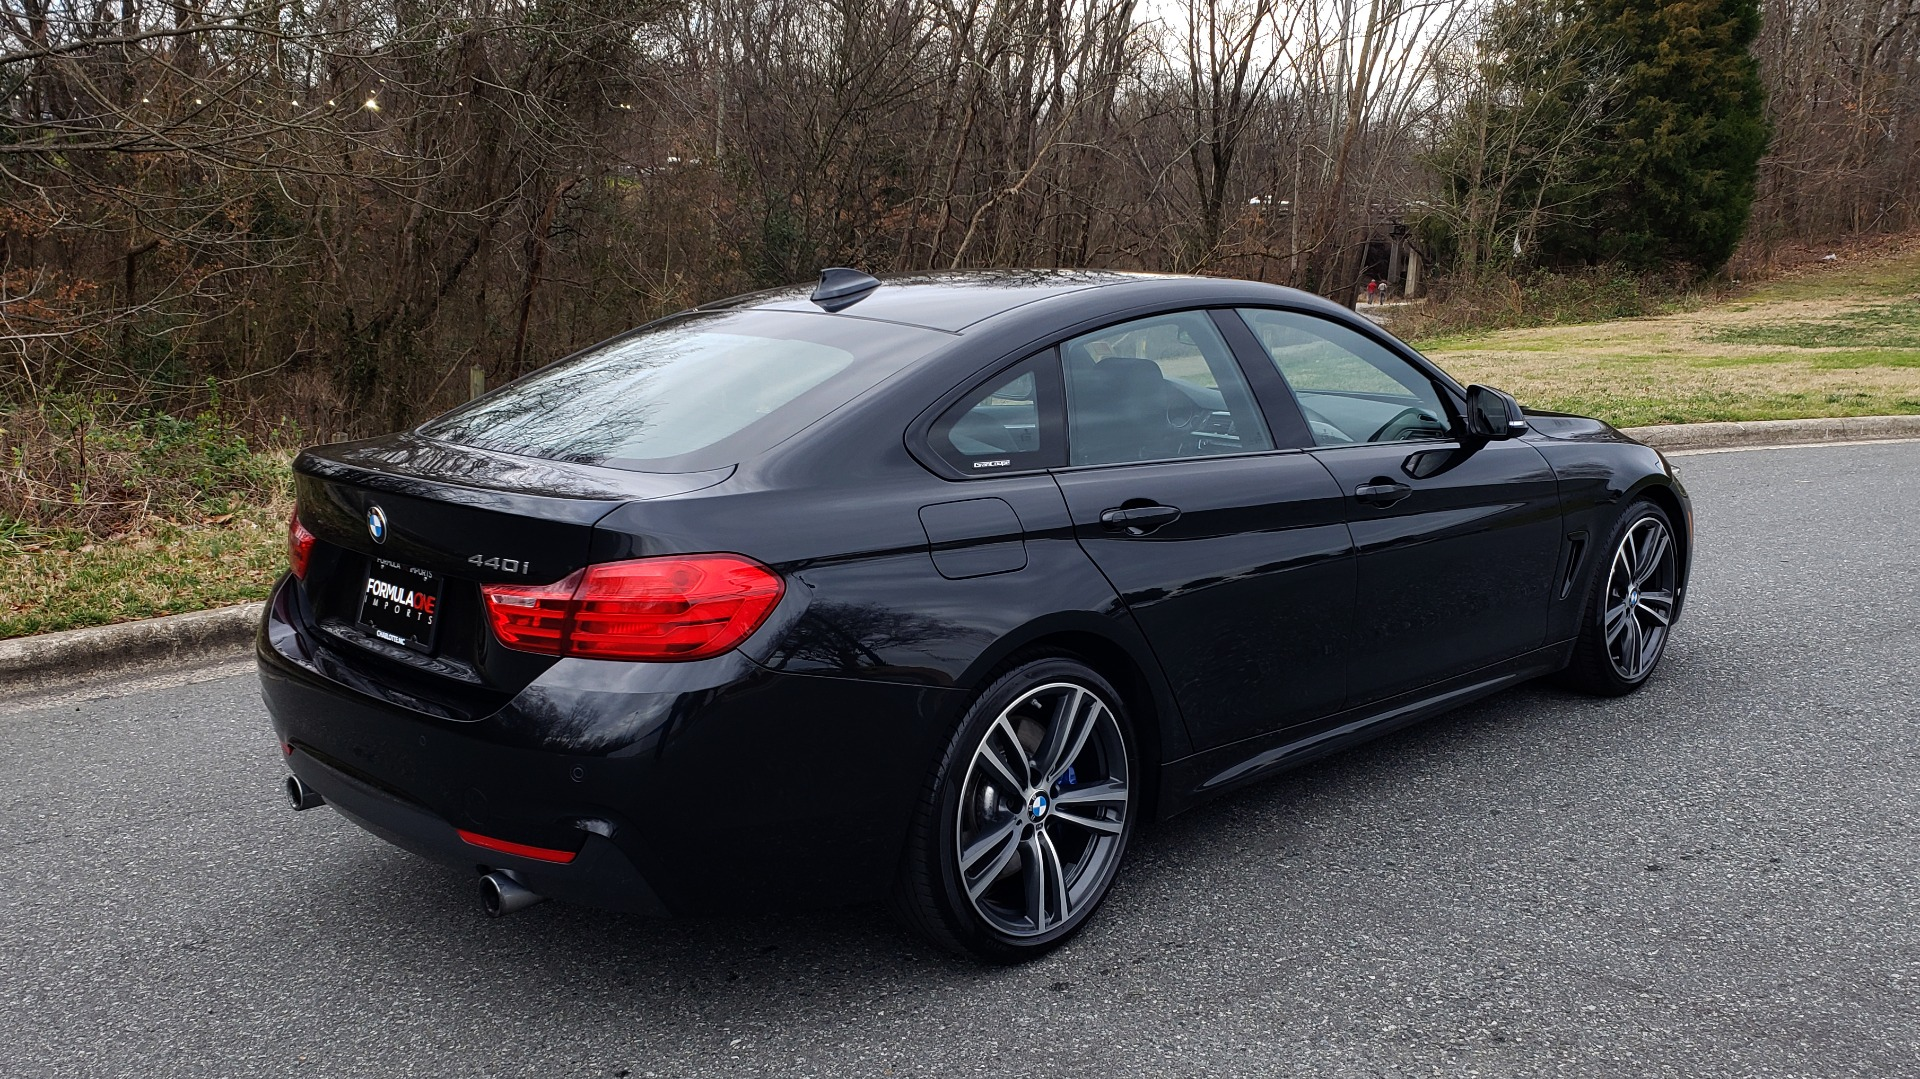 Used 2017 BMW 4 SERIES 440i M-SPORT / TECH / TRACK HANDLING / APPLE CAR PLAY for sale Sold at Formula Imports in Charlotte NC 28227 7